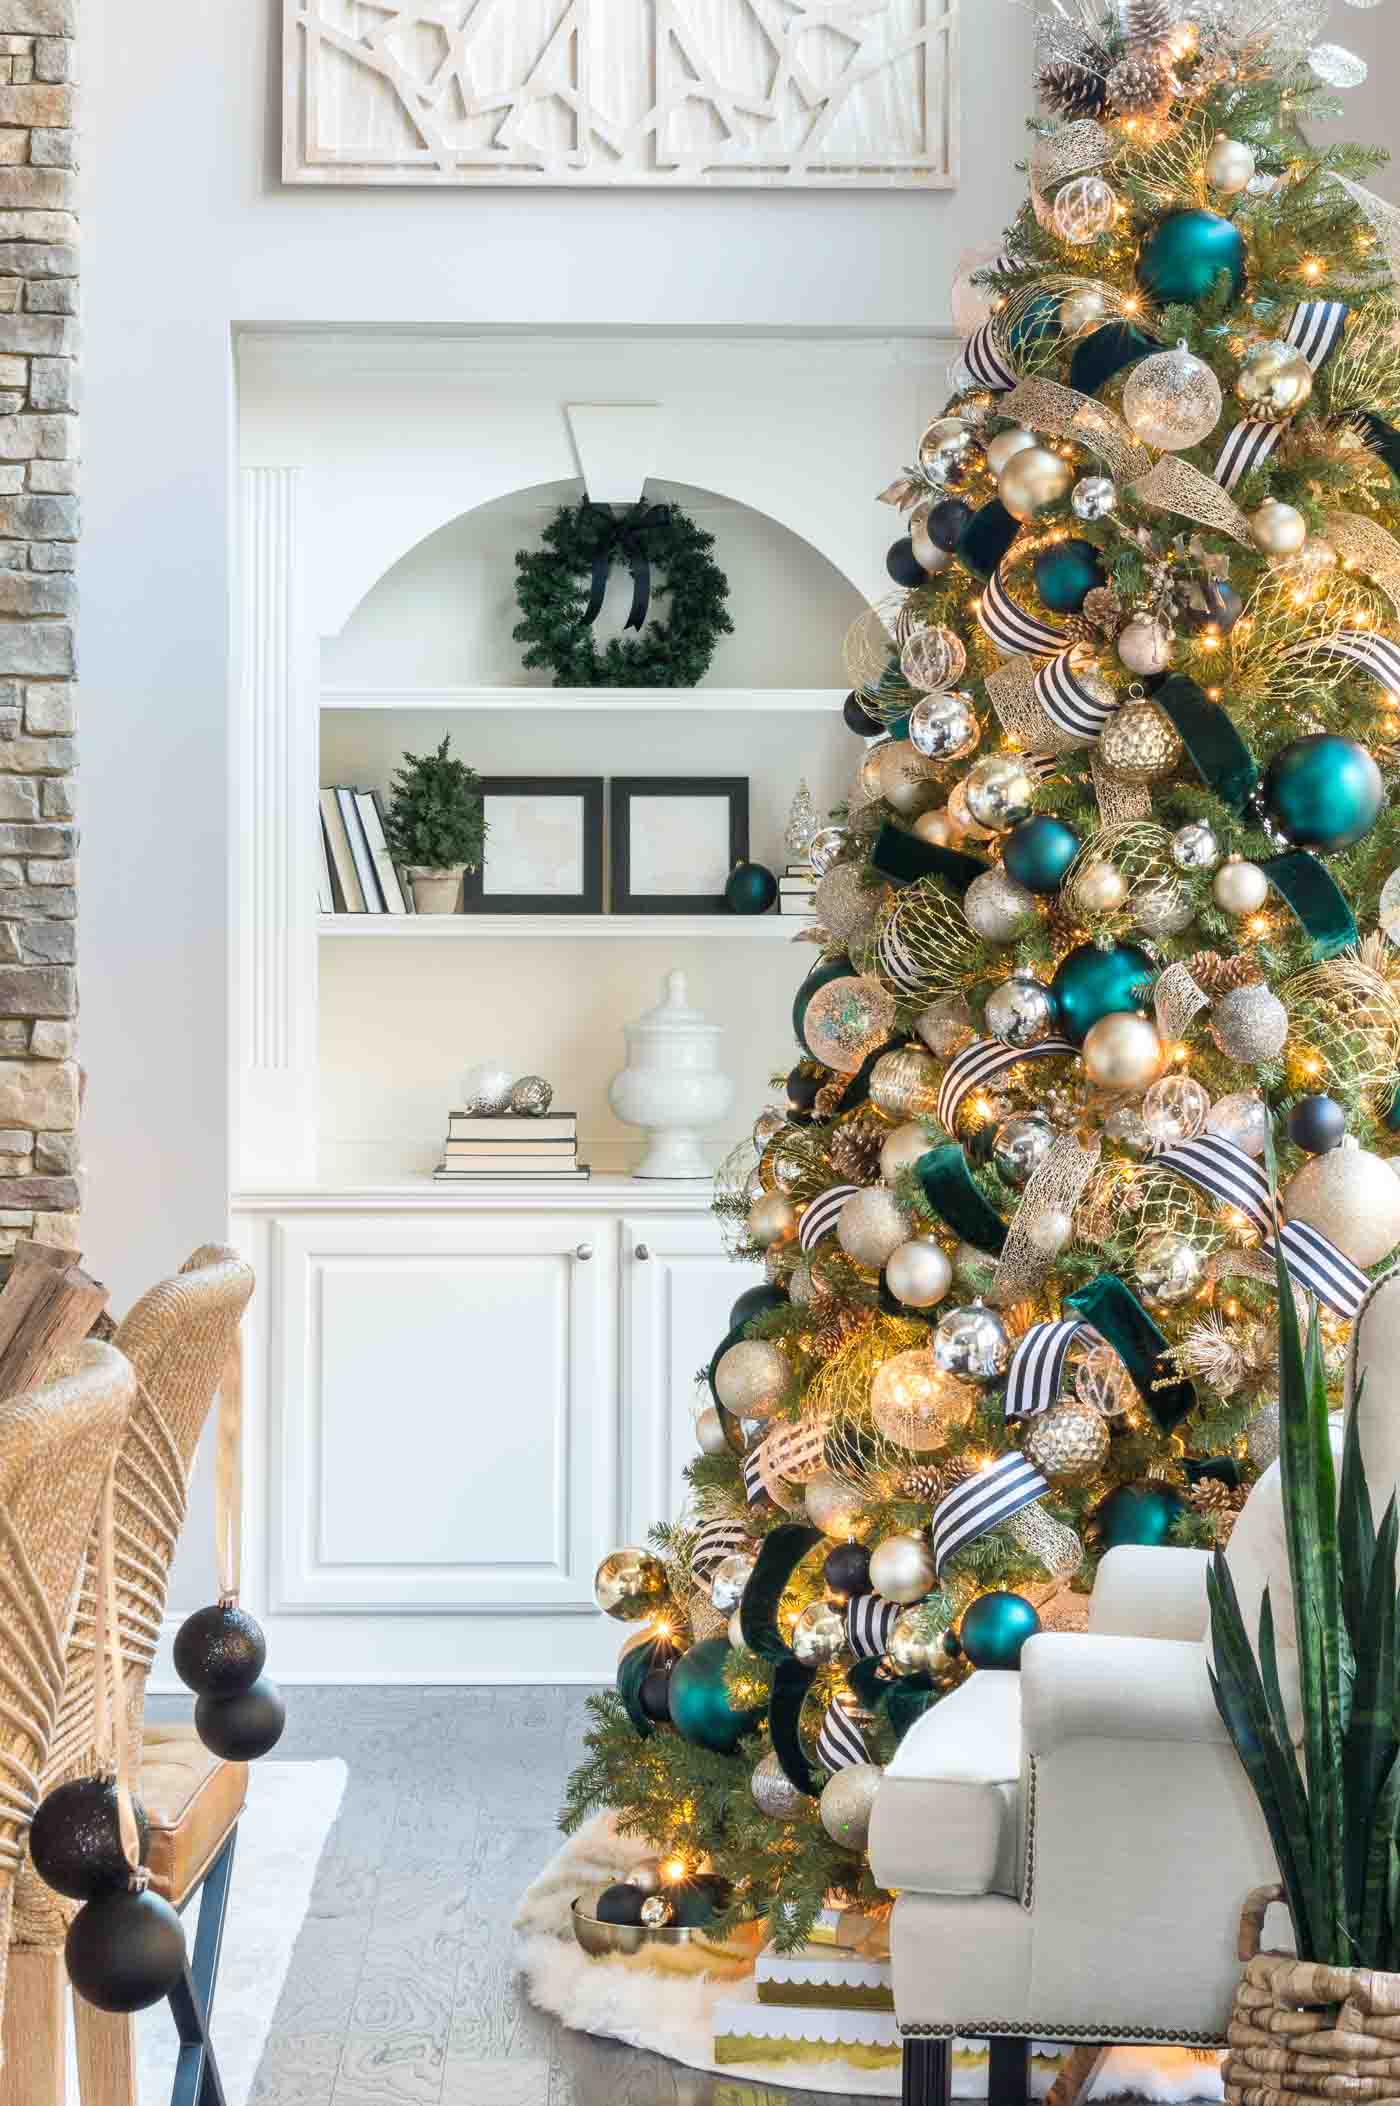 Christmas Home Tour Holiday Decorations And Unique Color Schemes